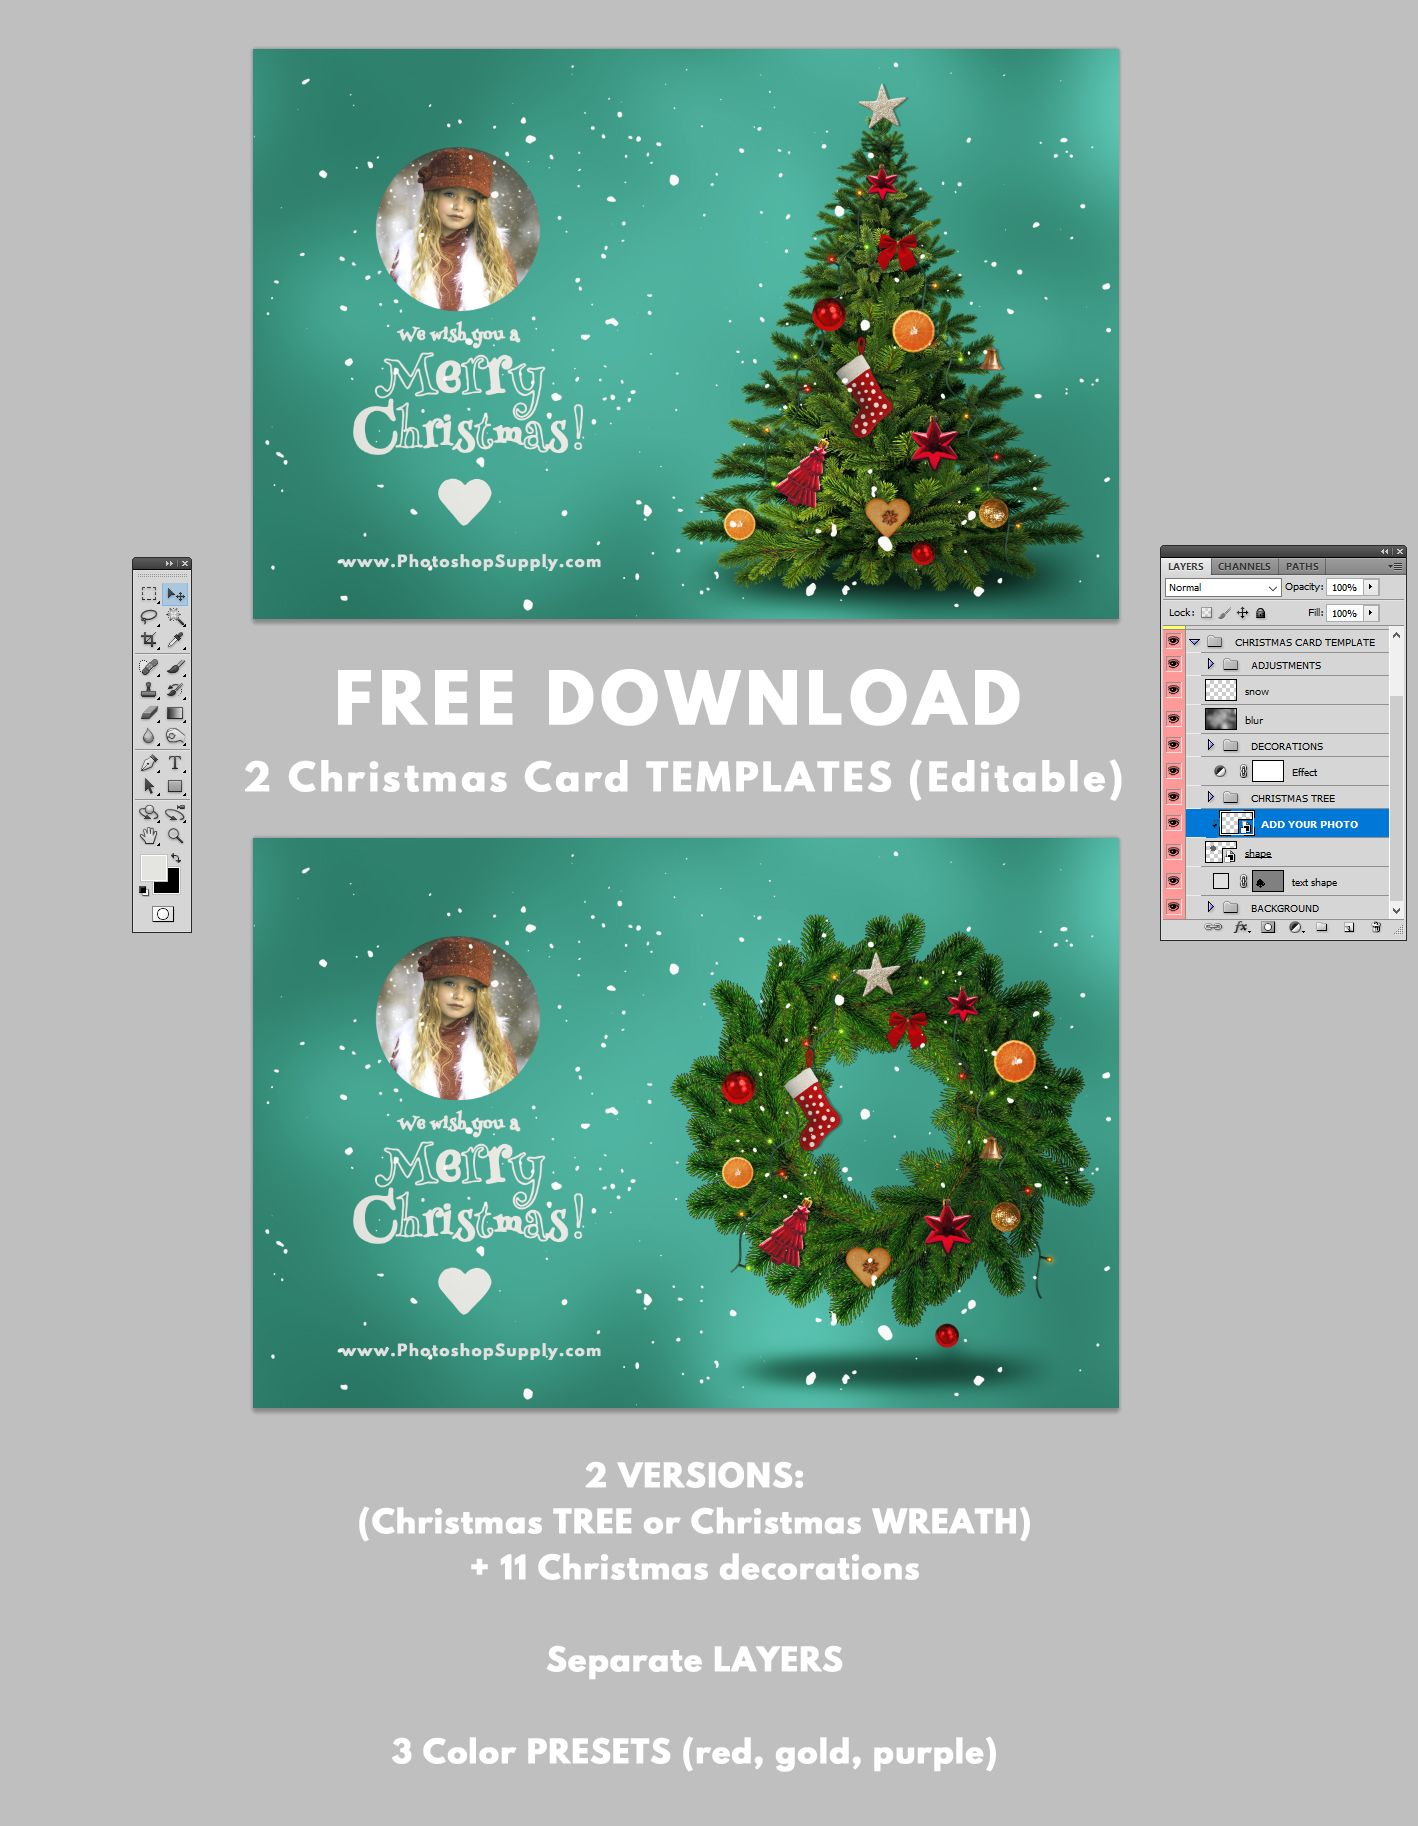 Christmas Card Templates For Photoshop Photoshop Supply Christmas Card Templates Free Photoshop Christmas Card Template Christmas Templates Free